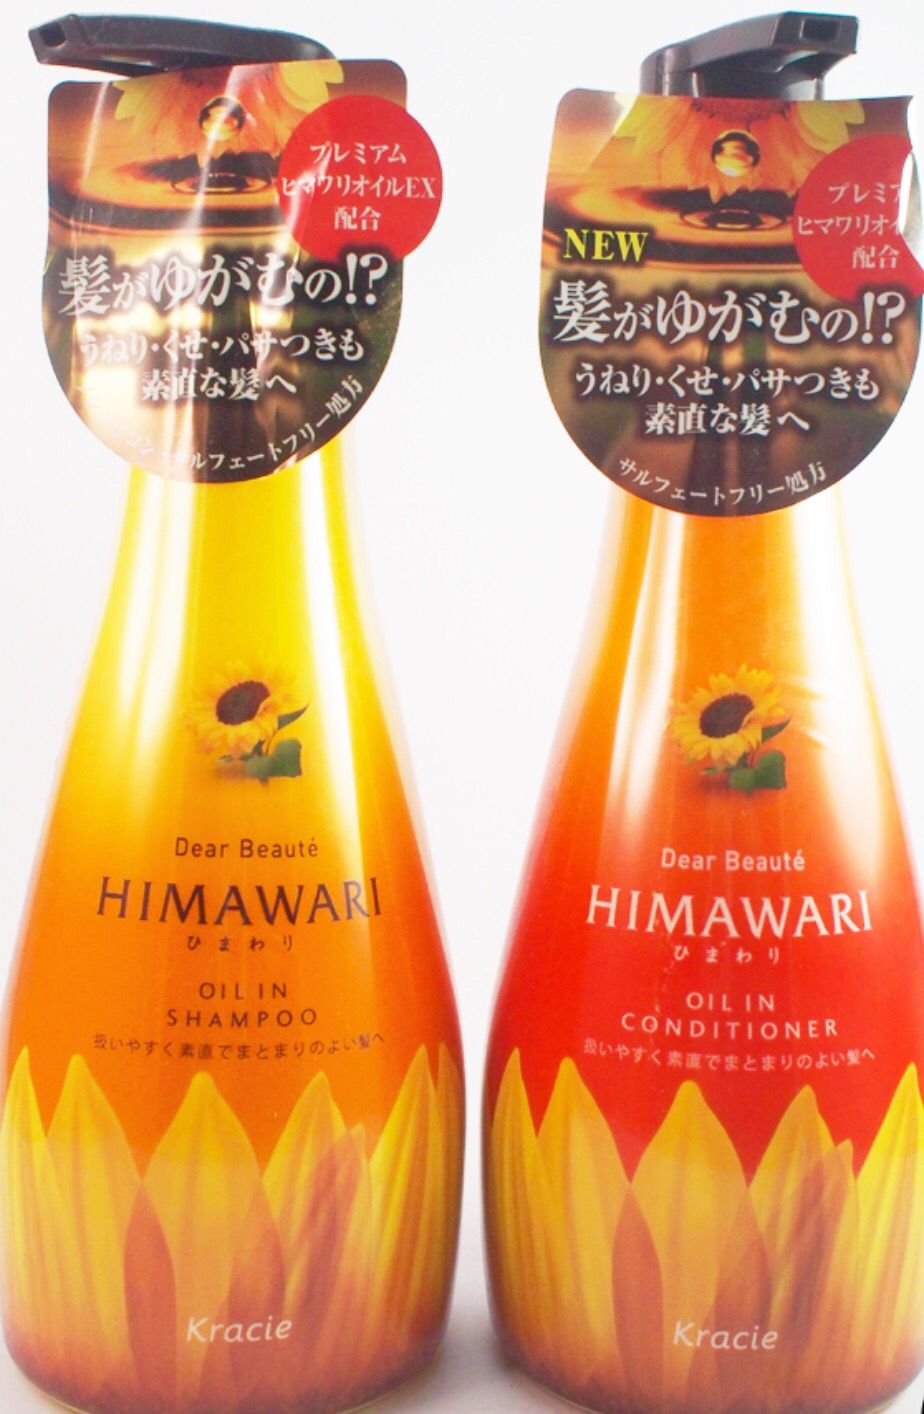 Himawari Oil Shampoo & Conditioner